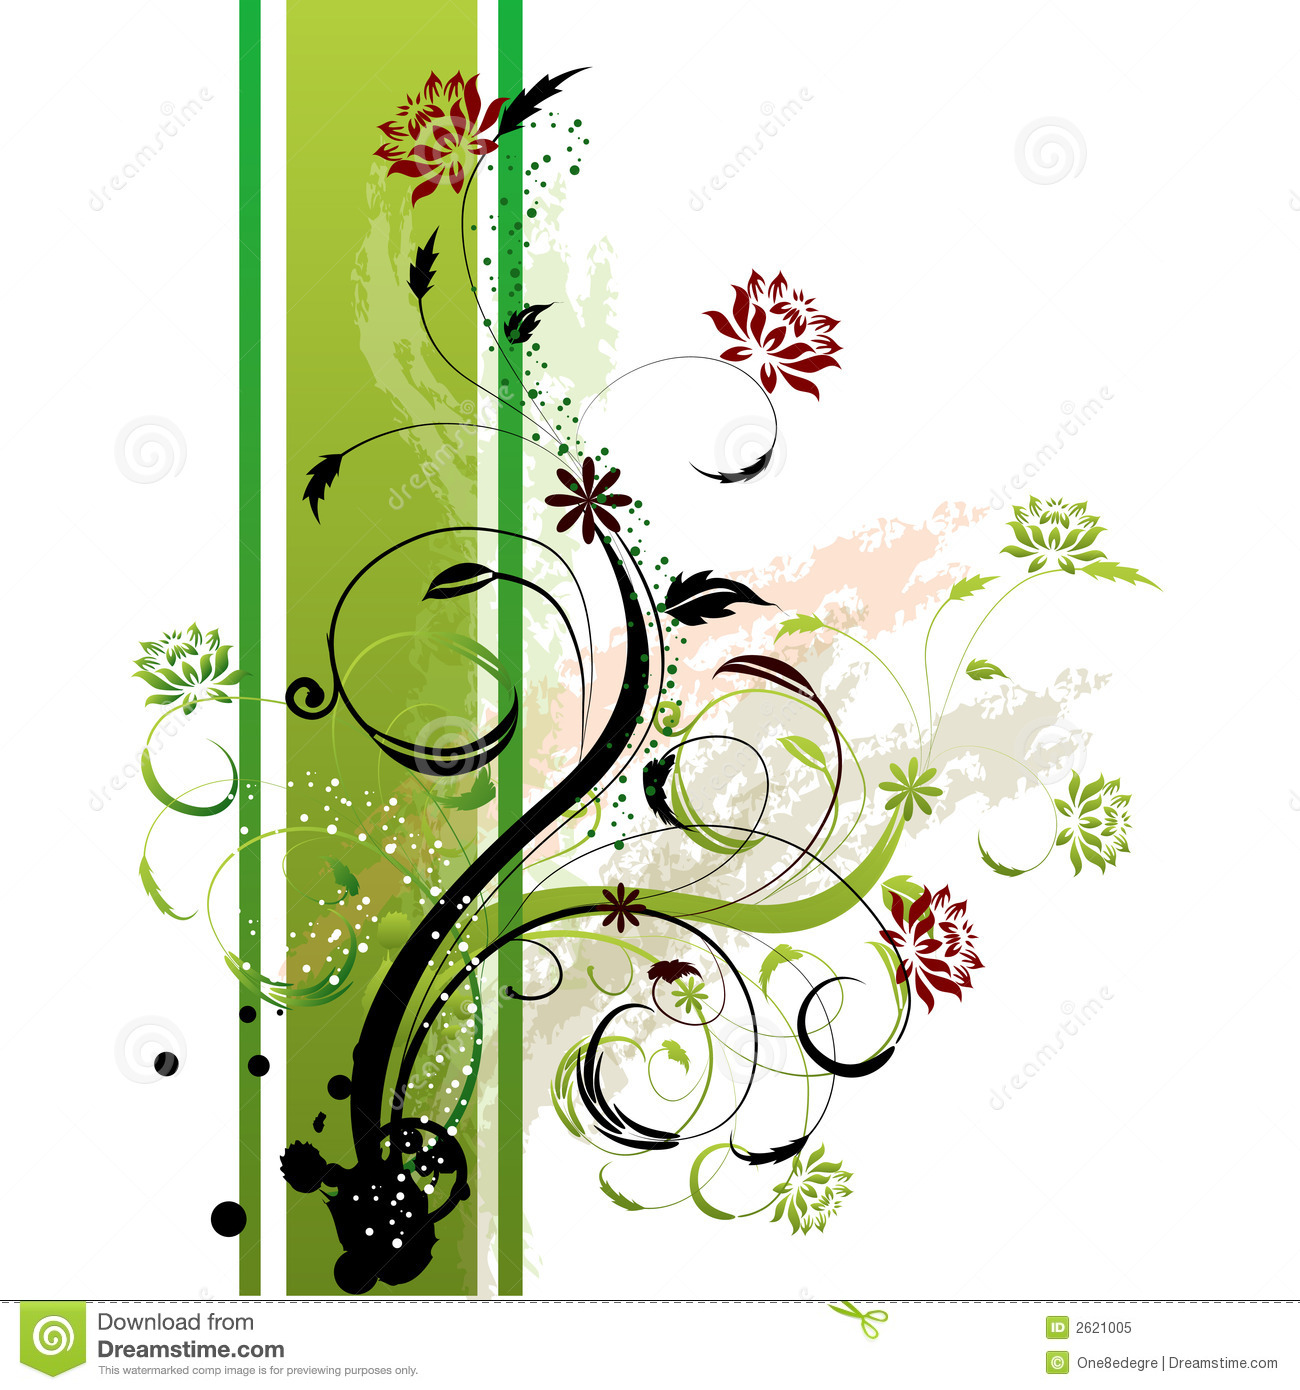 floral background green side stock illustration illustration 2621005. Black Bedroom Furniture Sets. Home Design Ideas